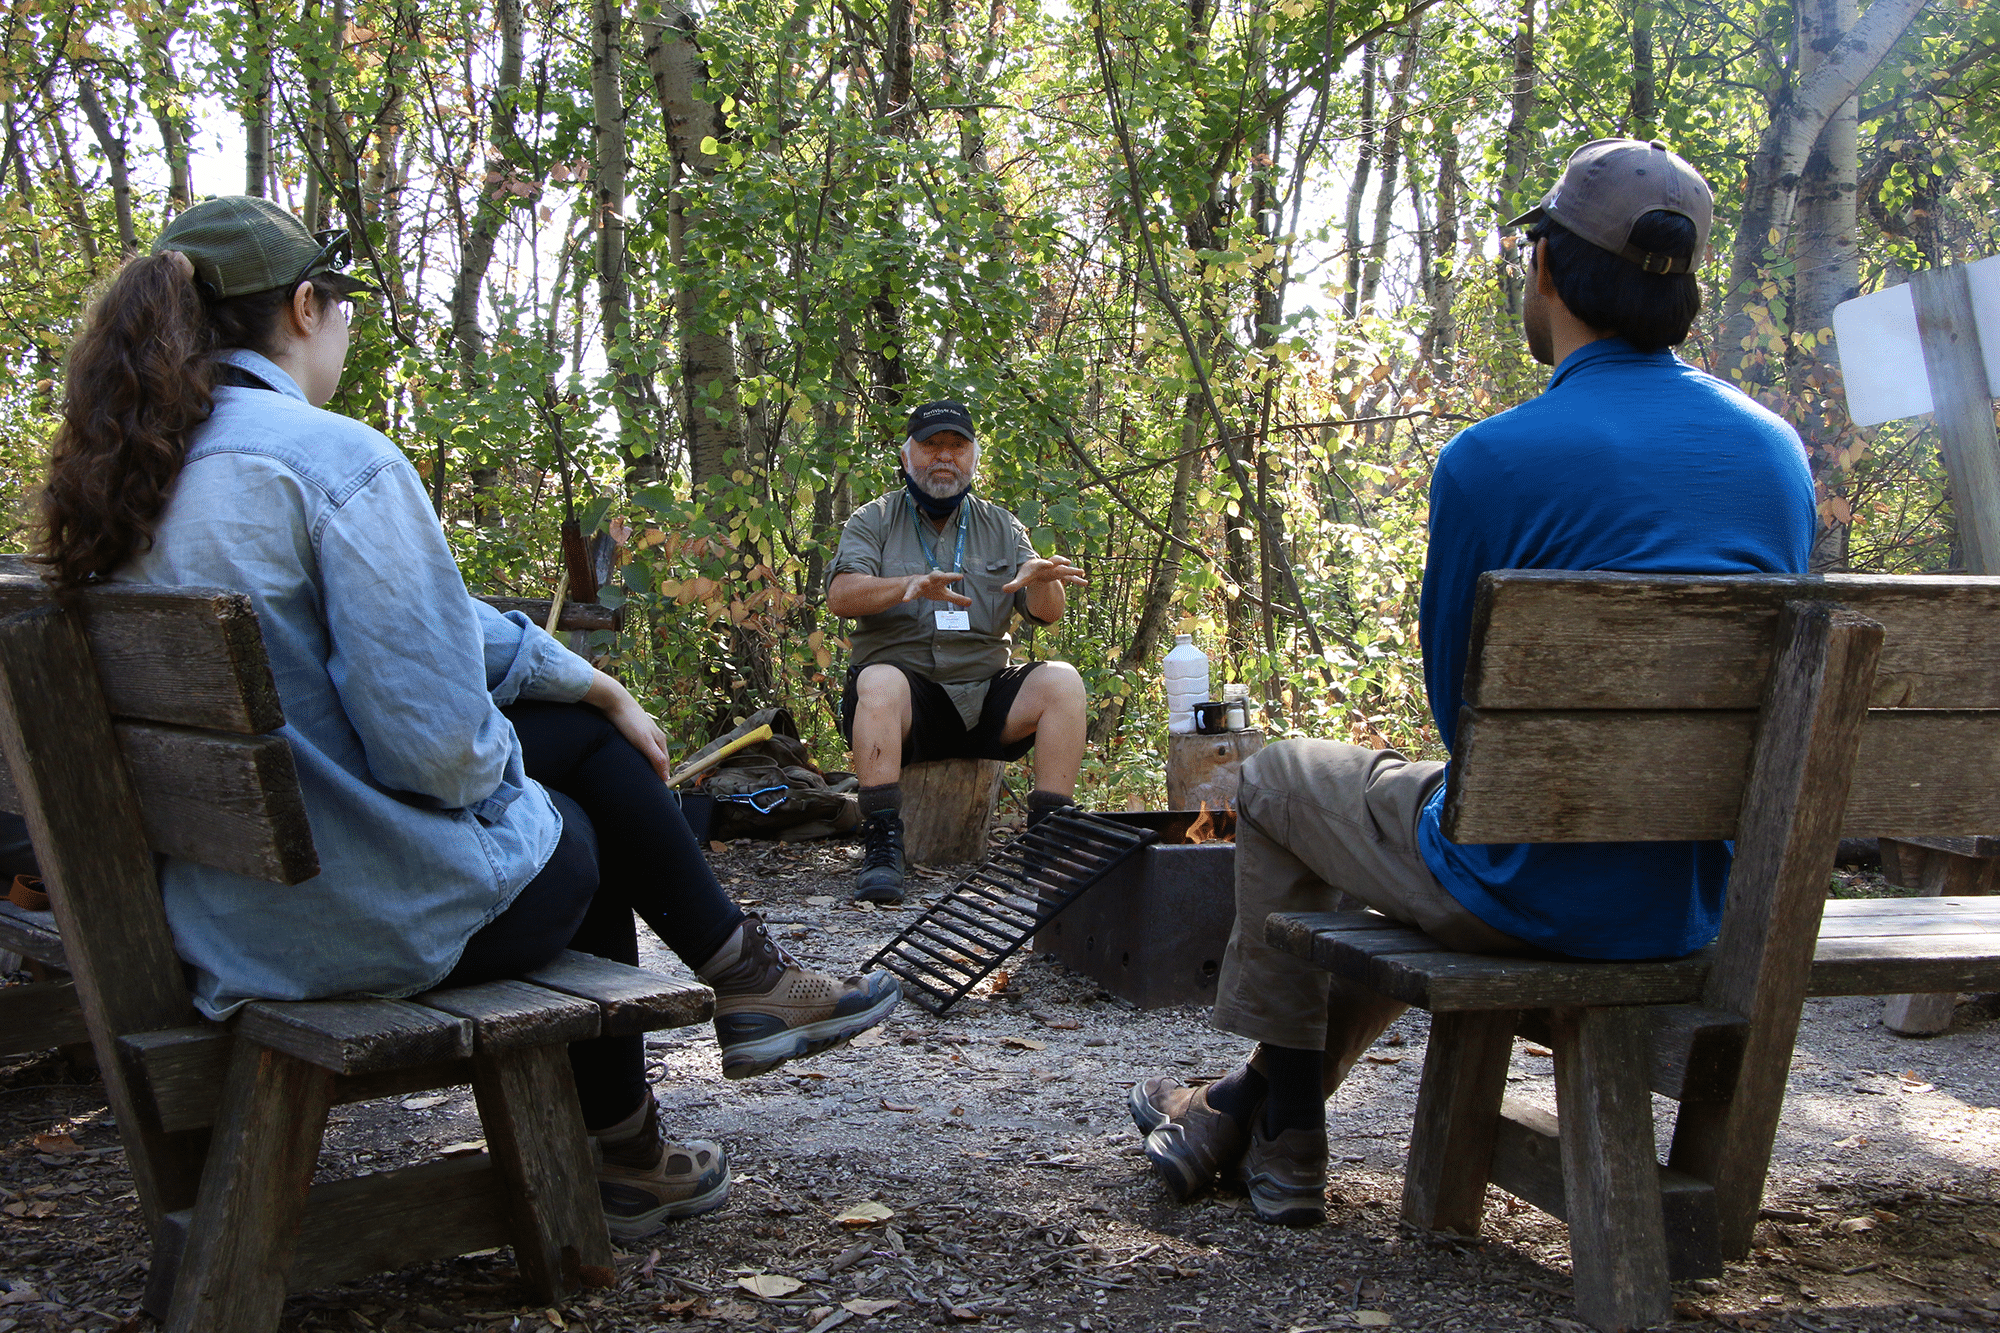 Keith tells a story to two adults sitting on different benches. Green leafy trees are behind Keith with a firepit in the middle.